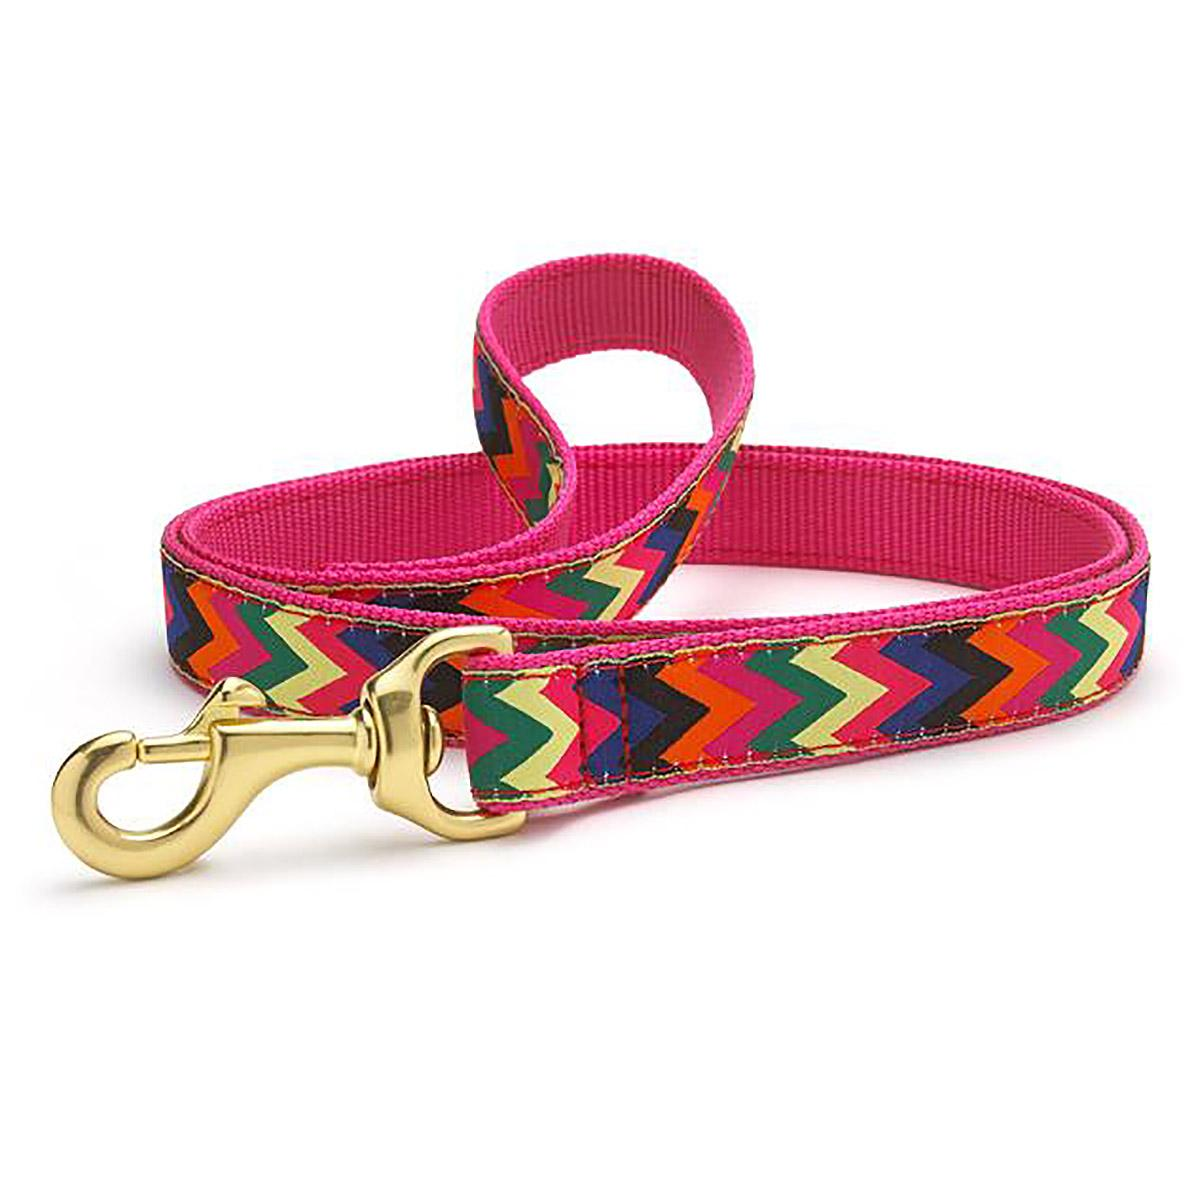 Zig Zag Wag Dog Leash by Up Country